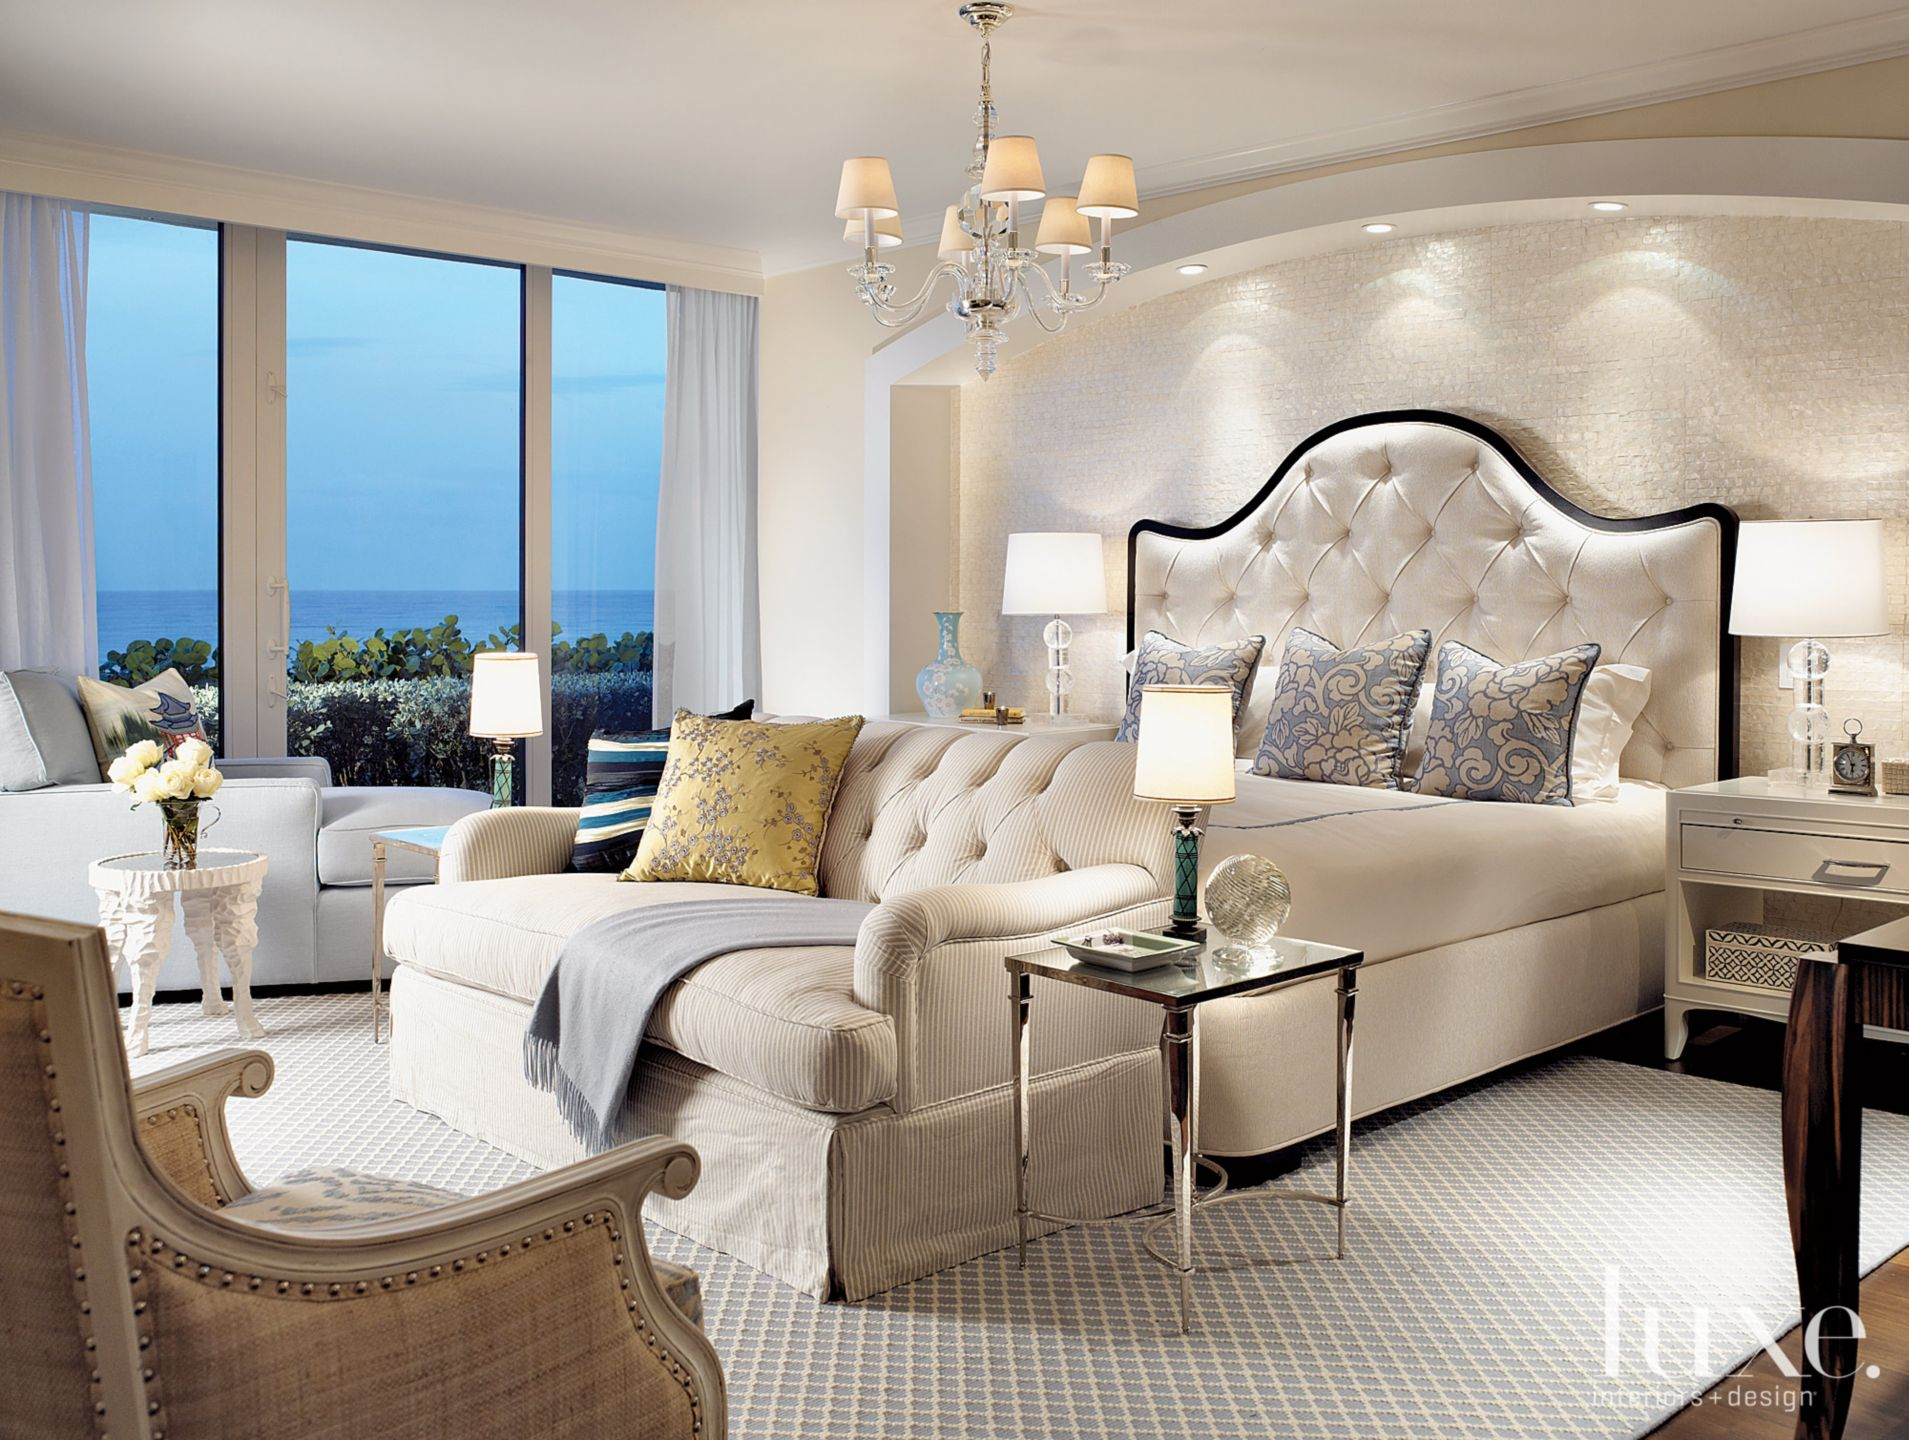 Contemporary White Bedroom with Tufted Sofa